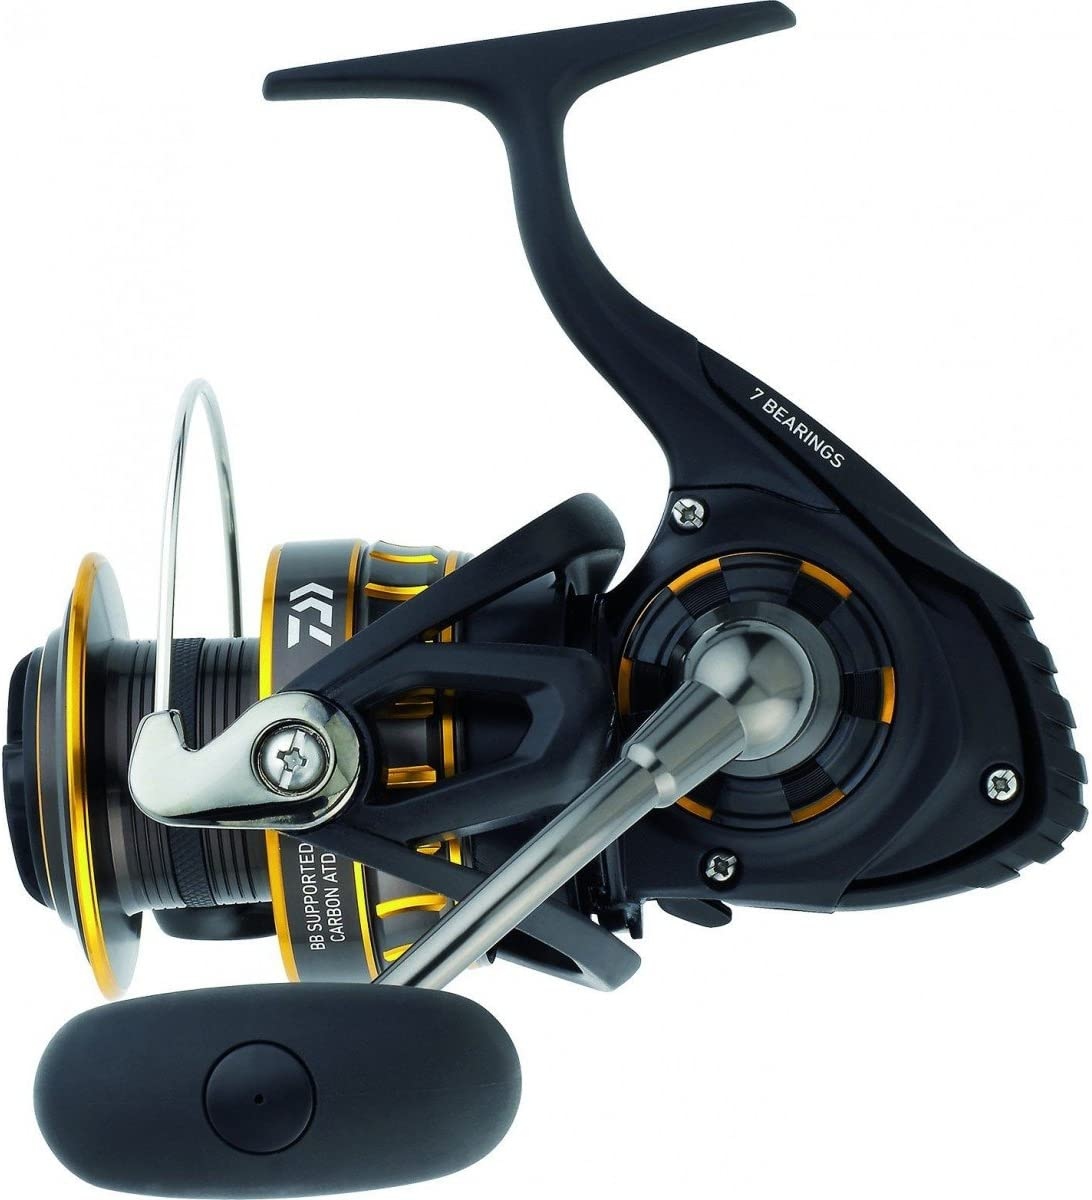 The Daiwa Bg Reel